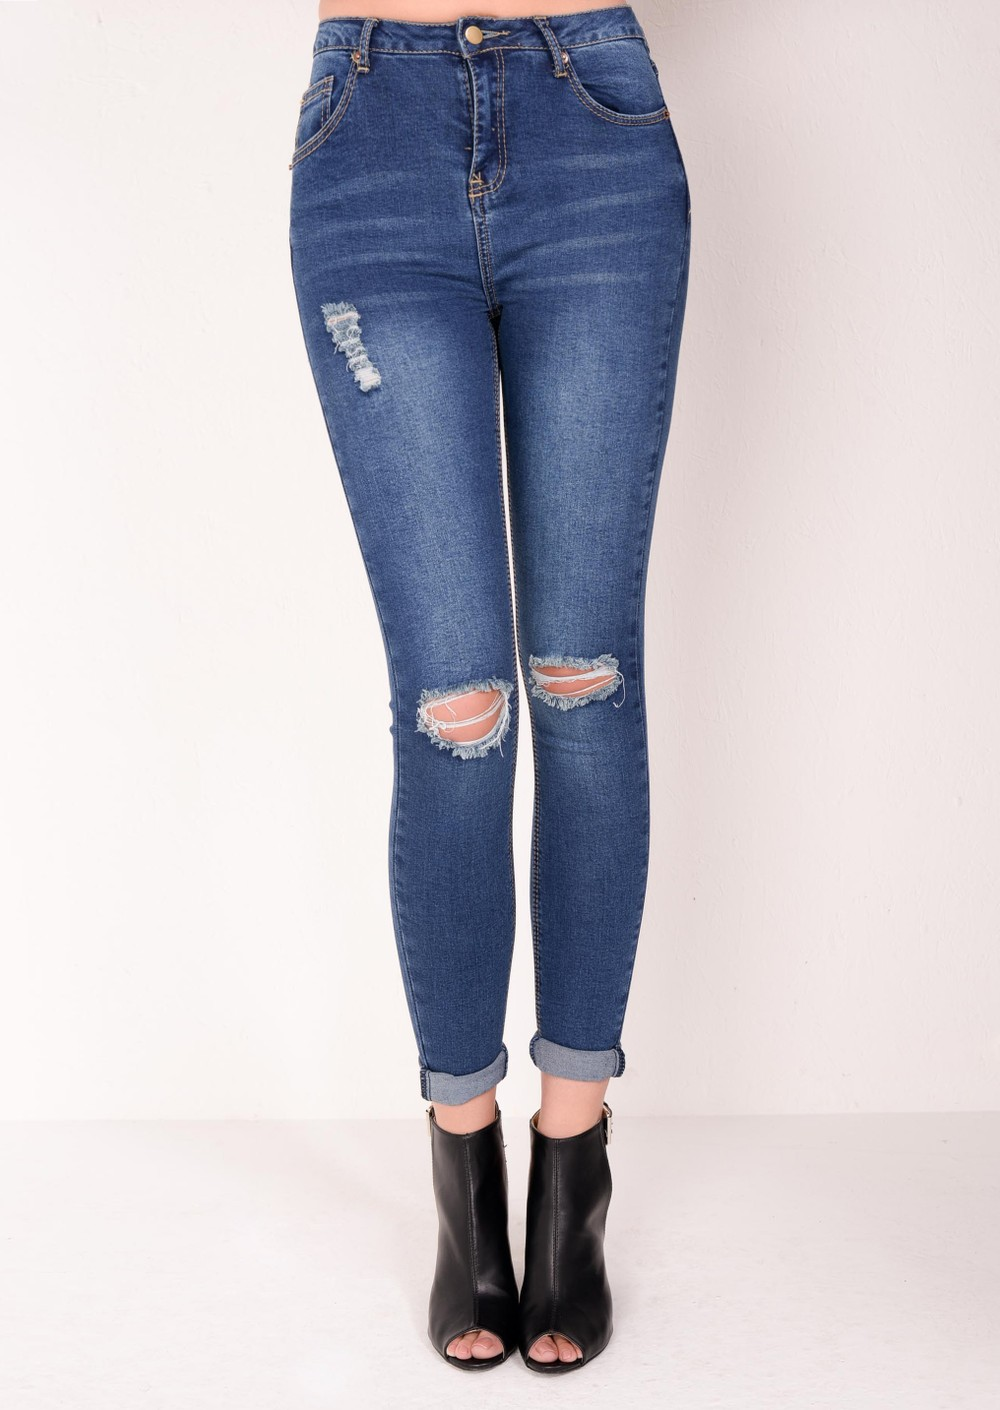 Find great deals on eBay for ripped jeans high waisted. Shop with confidence.